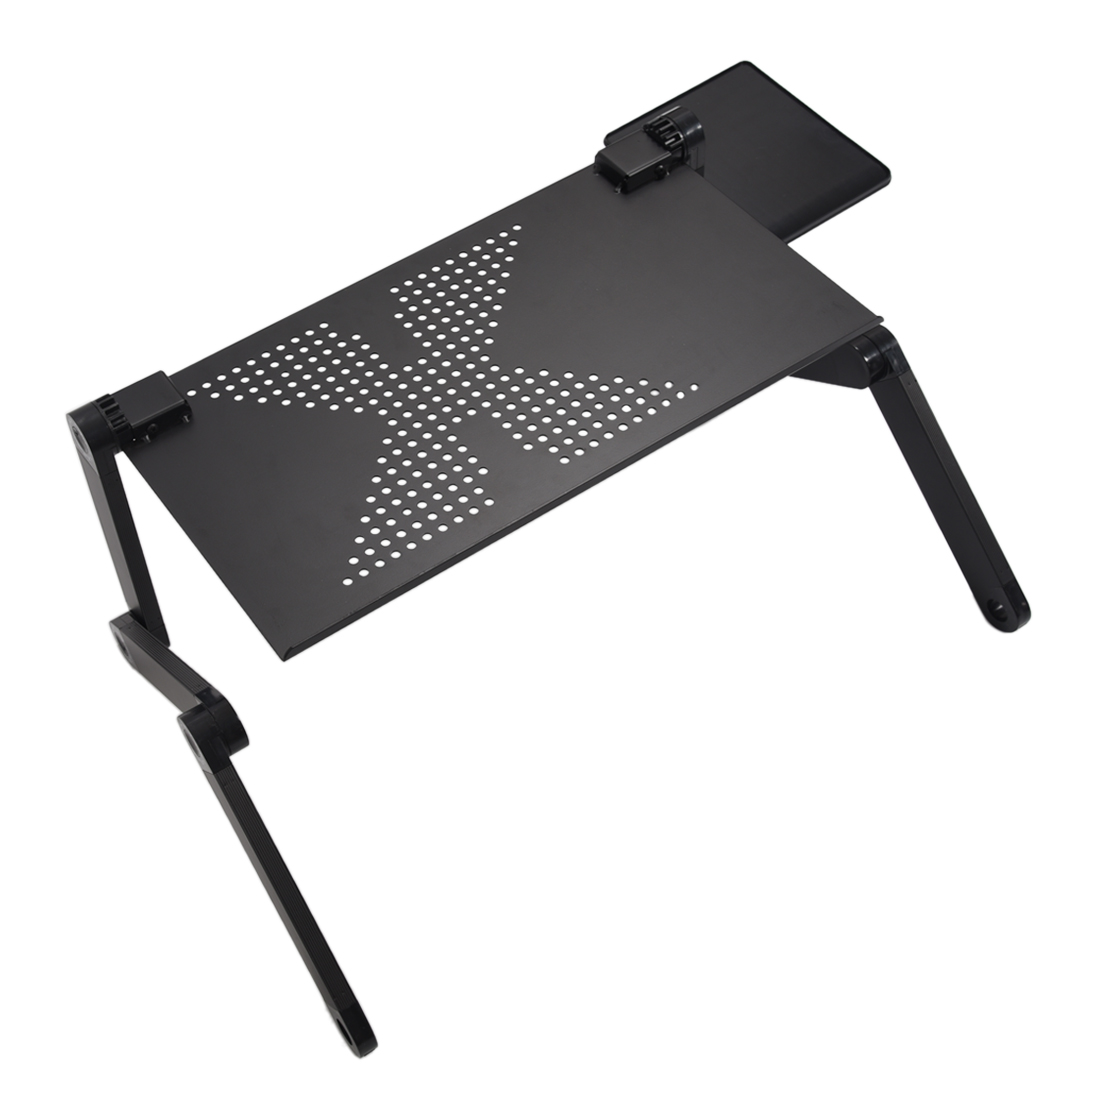 High Quality Portable Foldable Adjustable Laptop Desk Computer Table Stand Tray For Sofa Bed Black ...